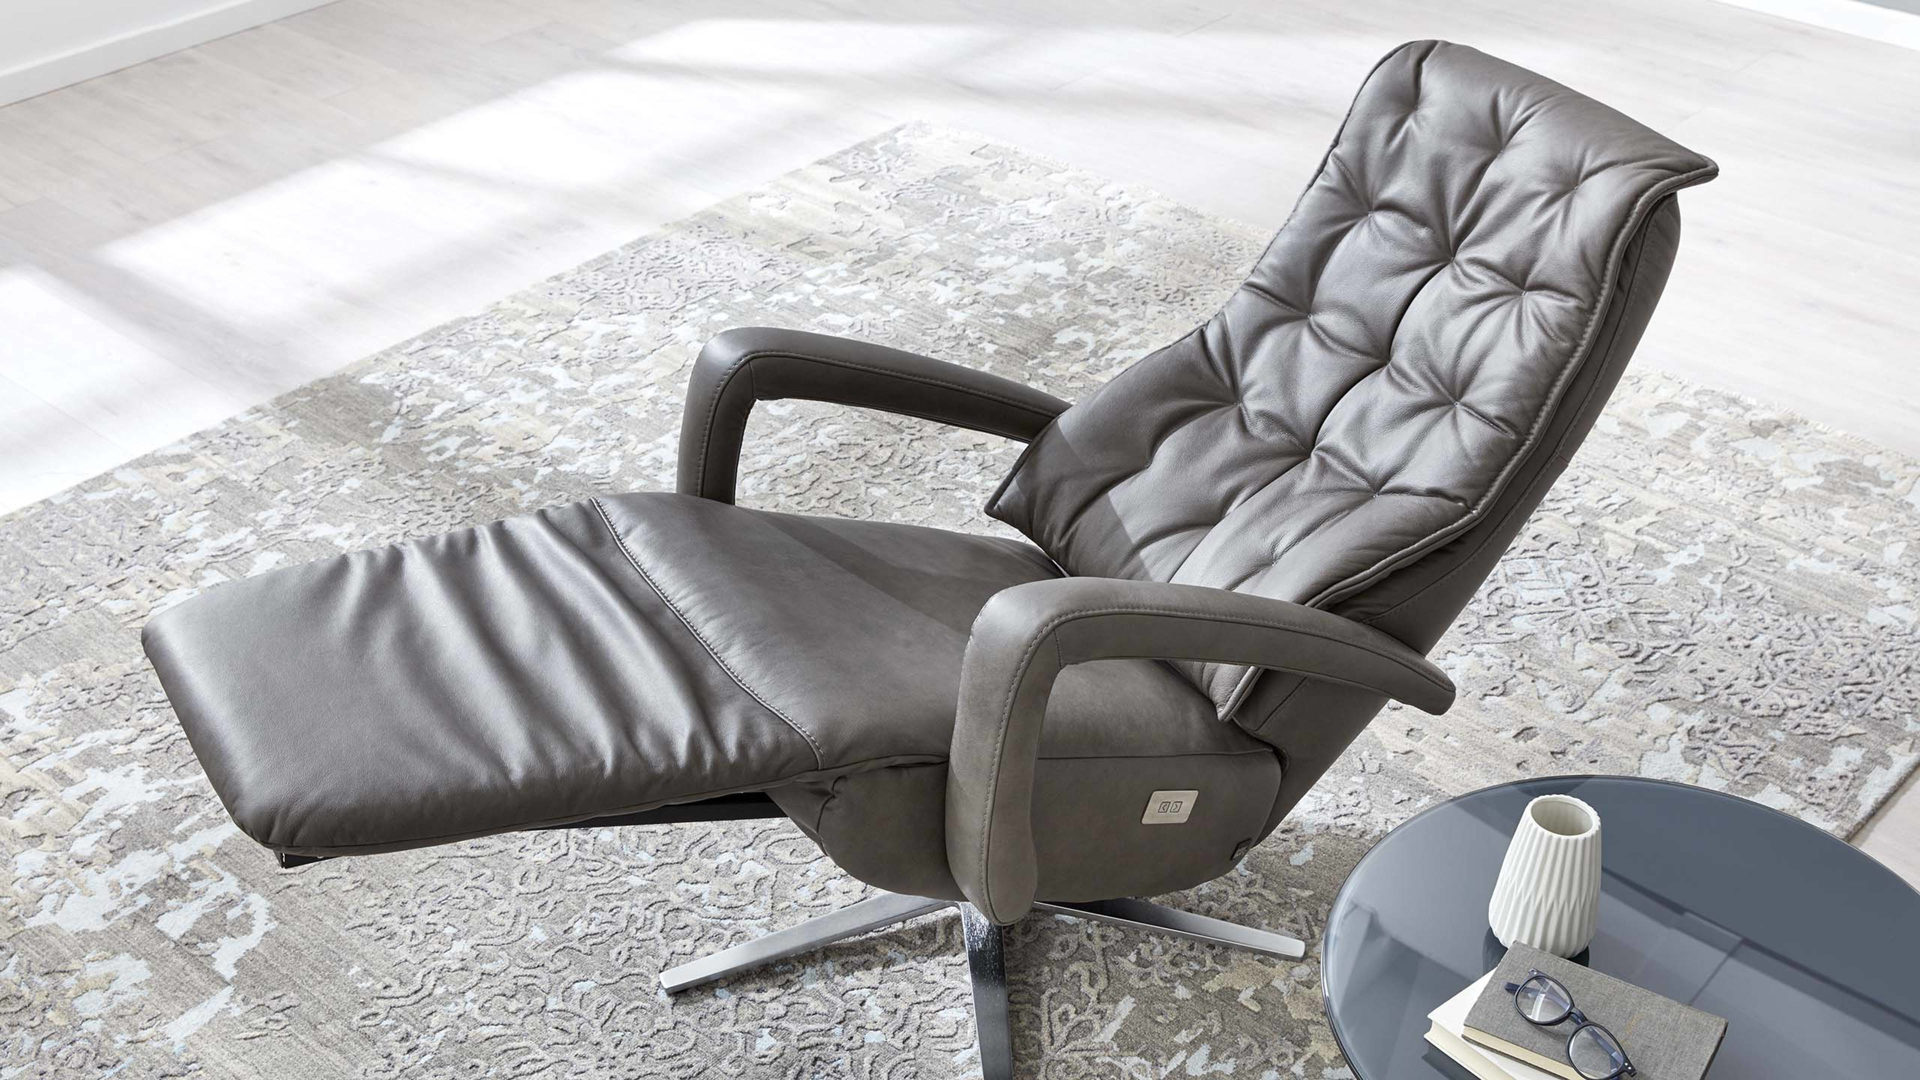 Interliving Sessel Serie 4502 Grauer Relaxsessel Graues Longlife